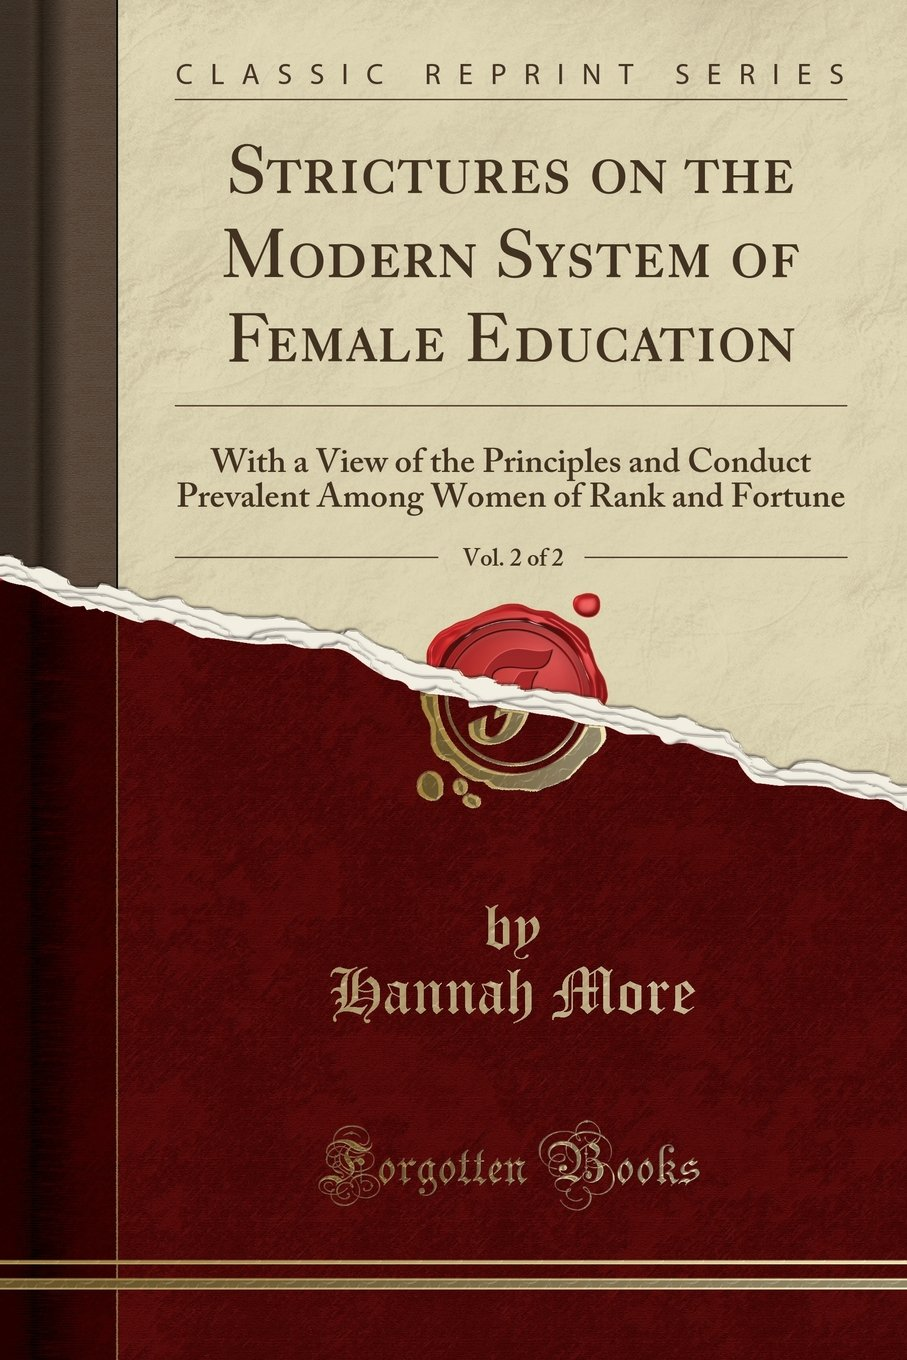 Download Strictures on the Modern System of Female Education, Vol. 2 of 2: With a View of the Principles and Conduct Prevalent Among Women of Rank and Fortune (Classic Reprint) PDF